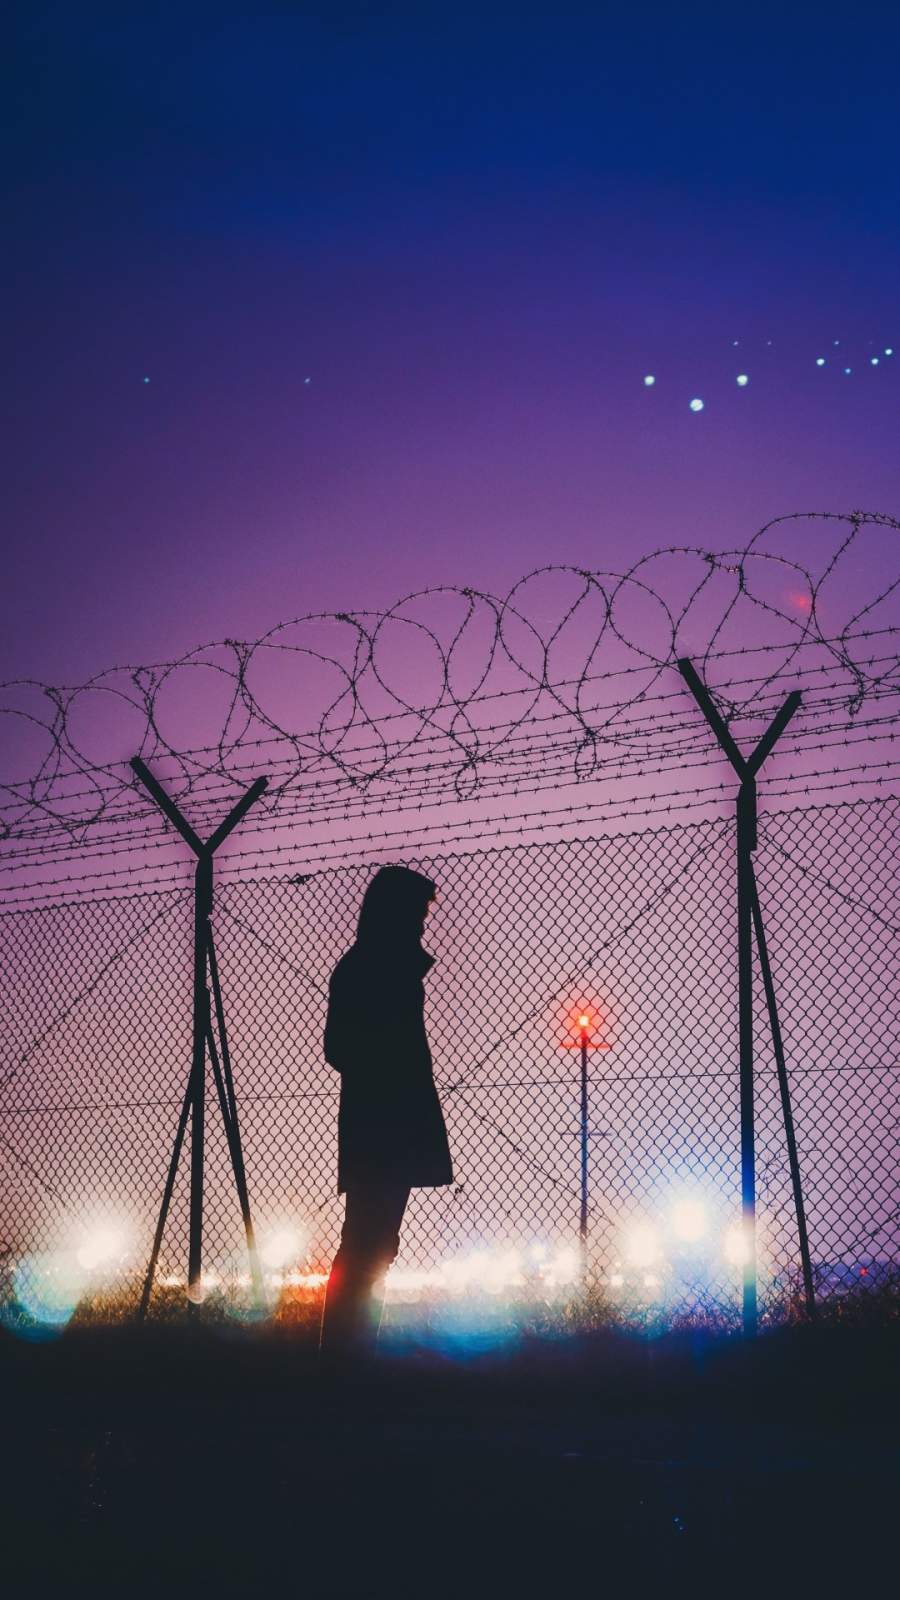 Night Lights Person Standing Behind Fence Silhouette